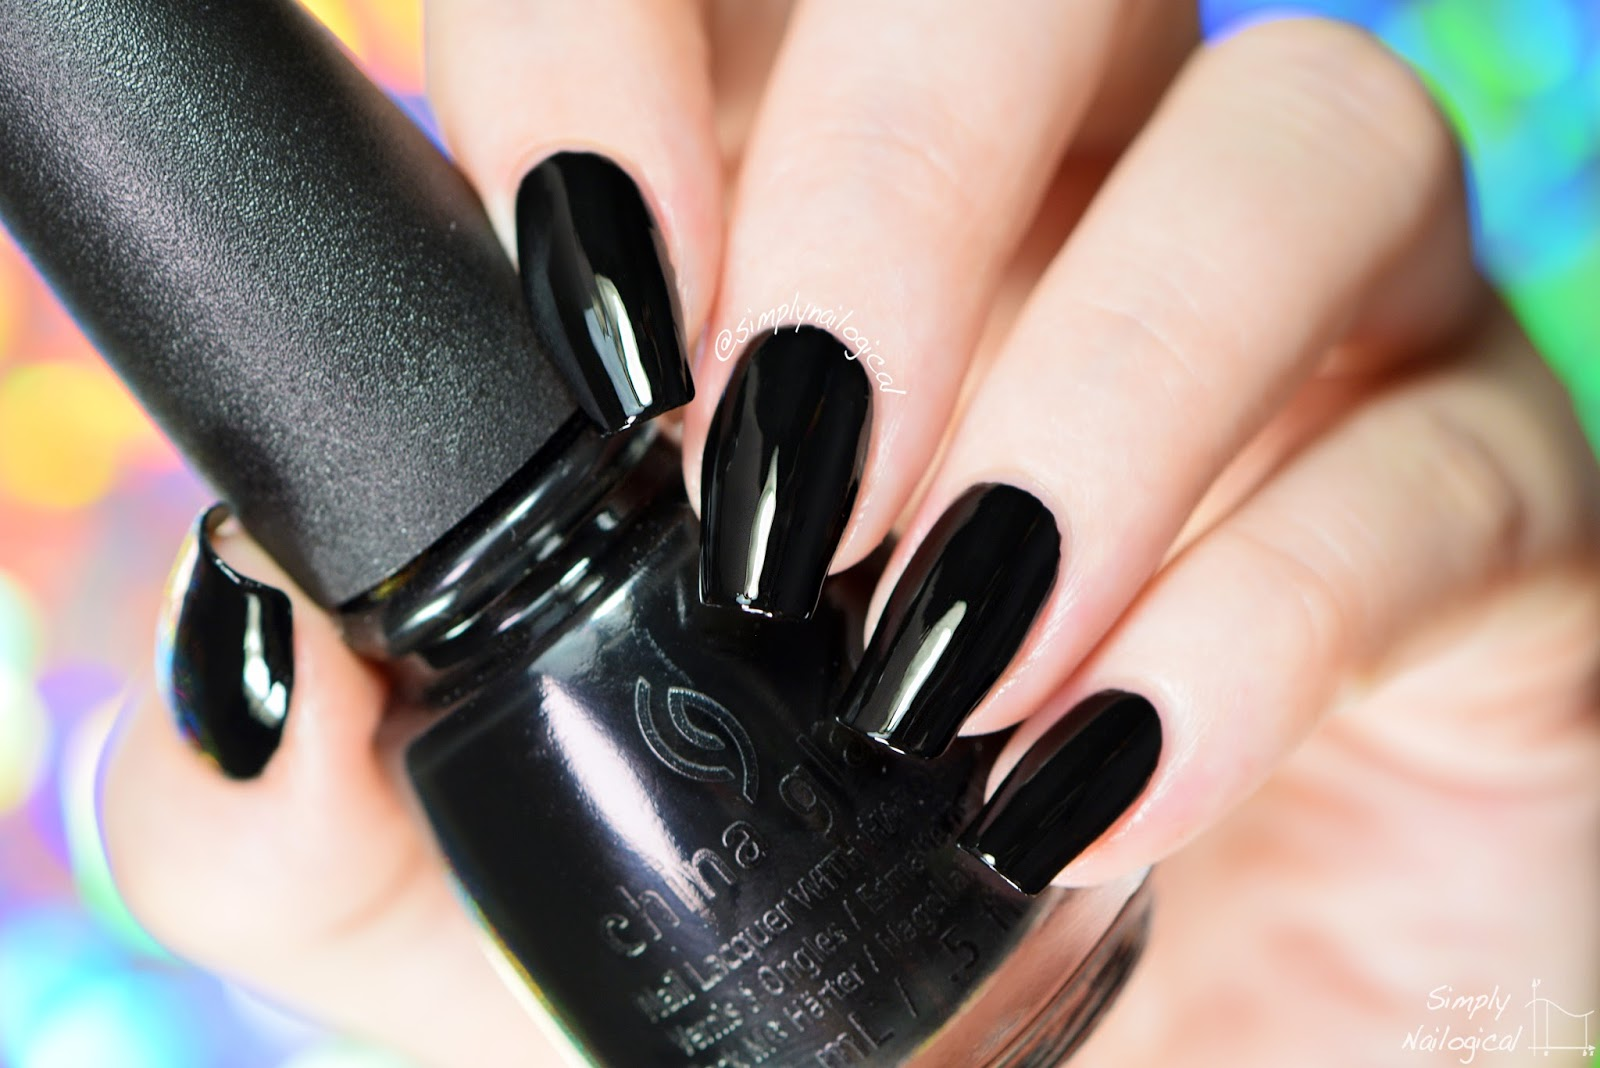 You Ll Find A List Of All The Other Black Polishes I Used Featured In Video Description Box On My Page